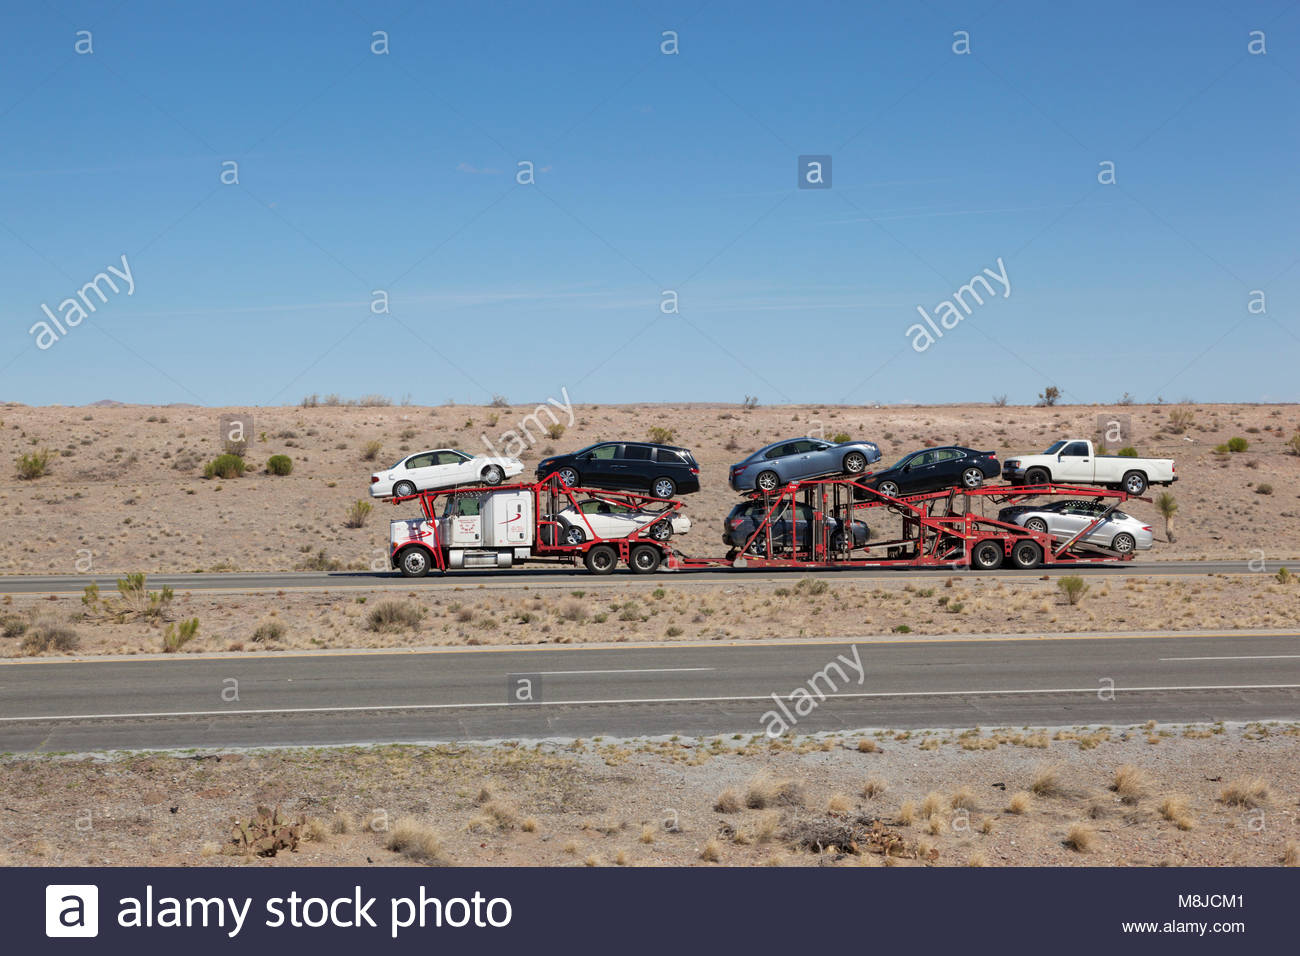 Semi-tractor with car hauler trailer loaded with automobiles on interstate highway in southeastern Arizona, USA, - Stock Image